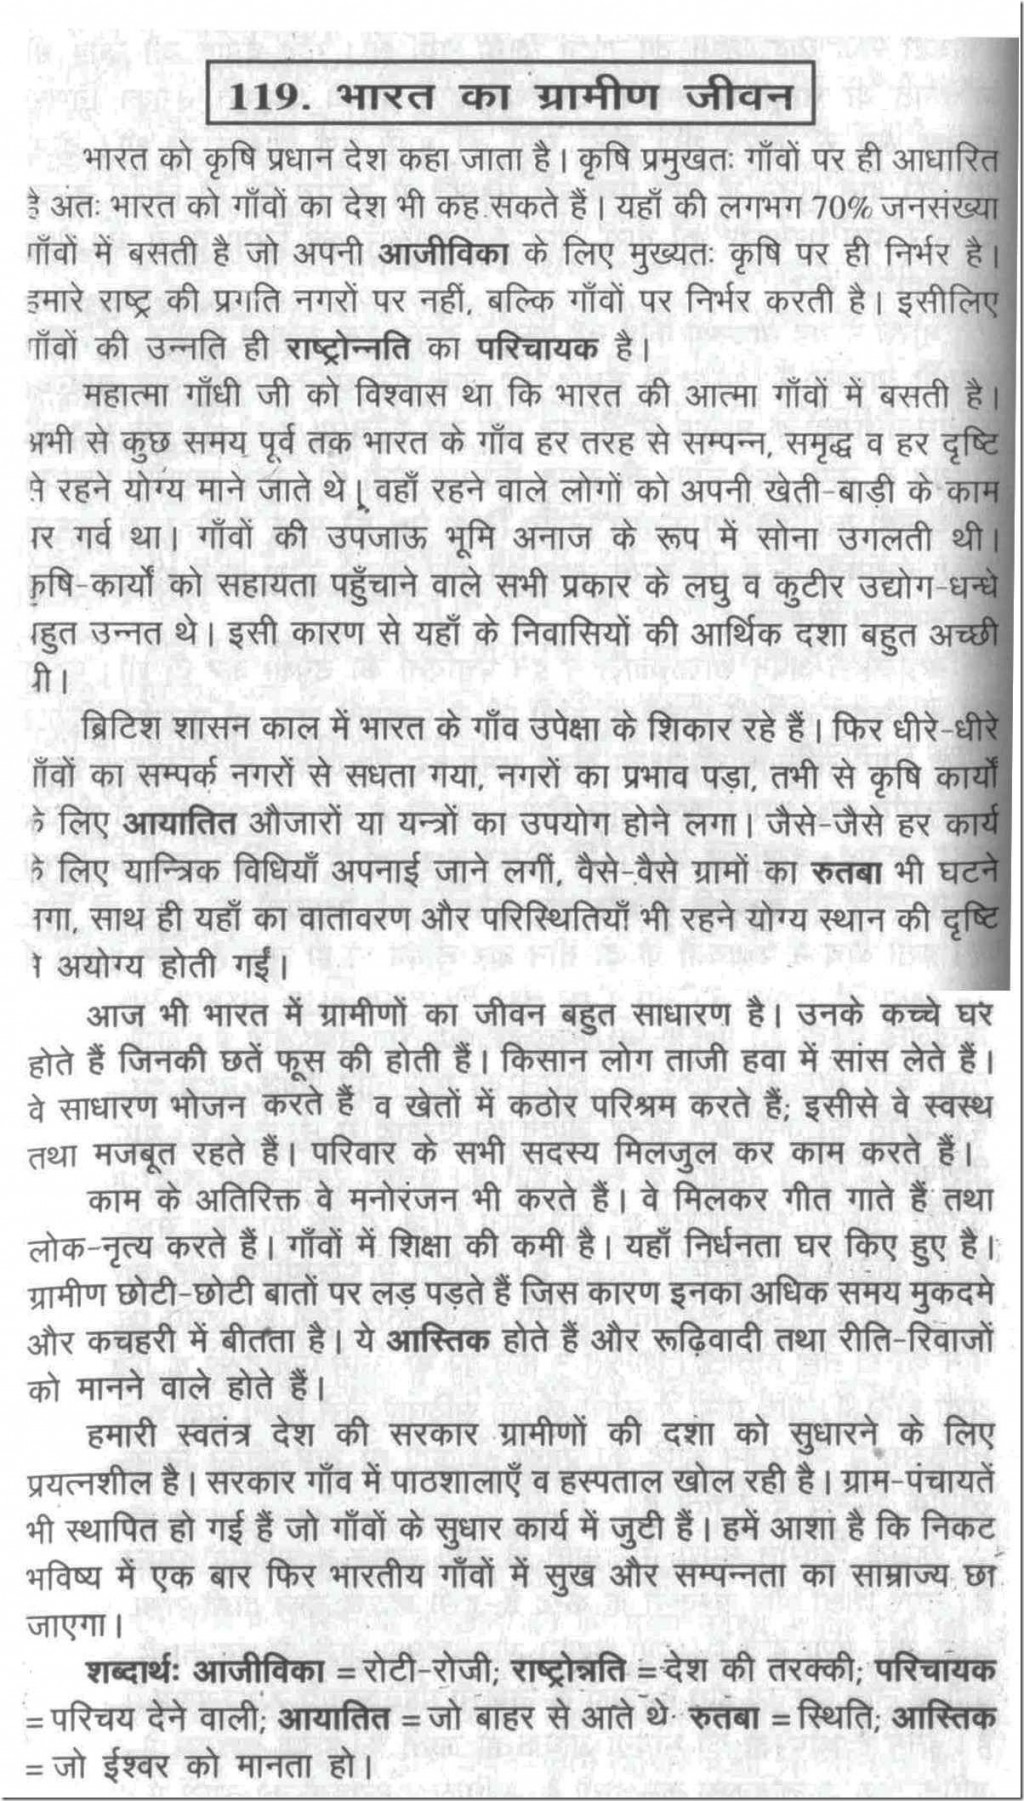 012 My Country Essay In Hindi Example 100119 Thumb Phenomenal 10 Lines Is Great Large